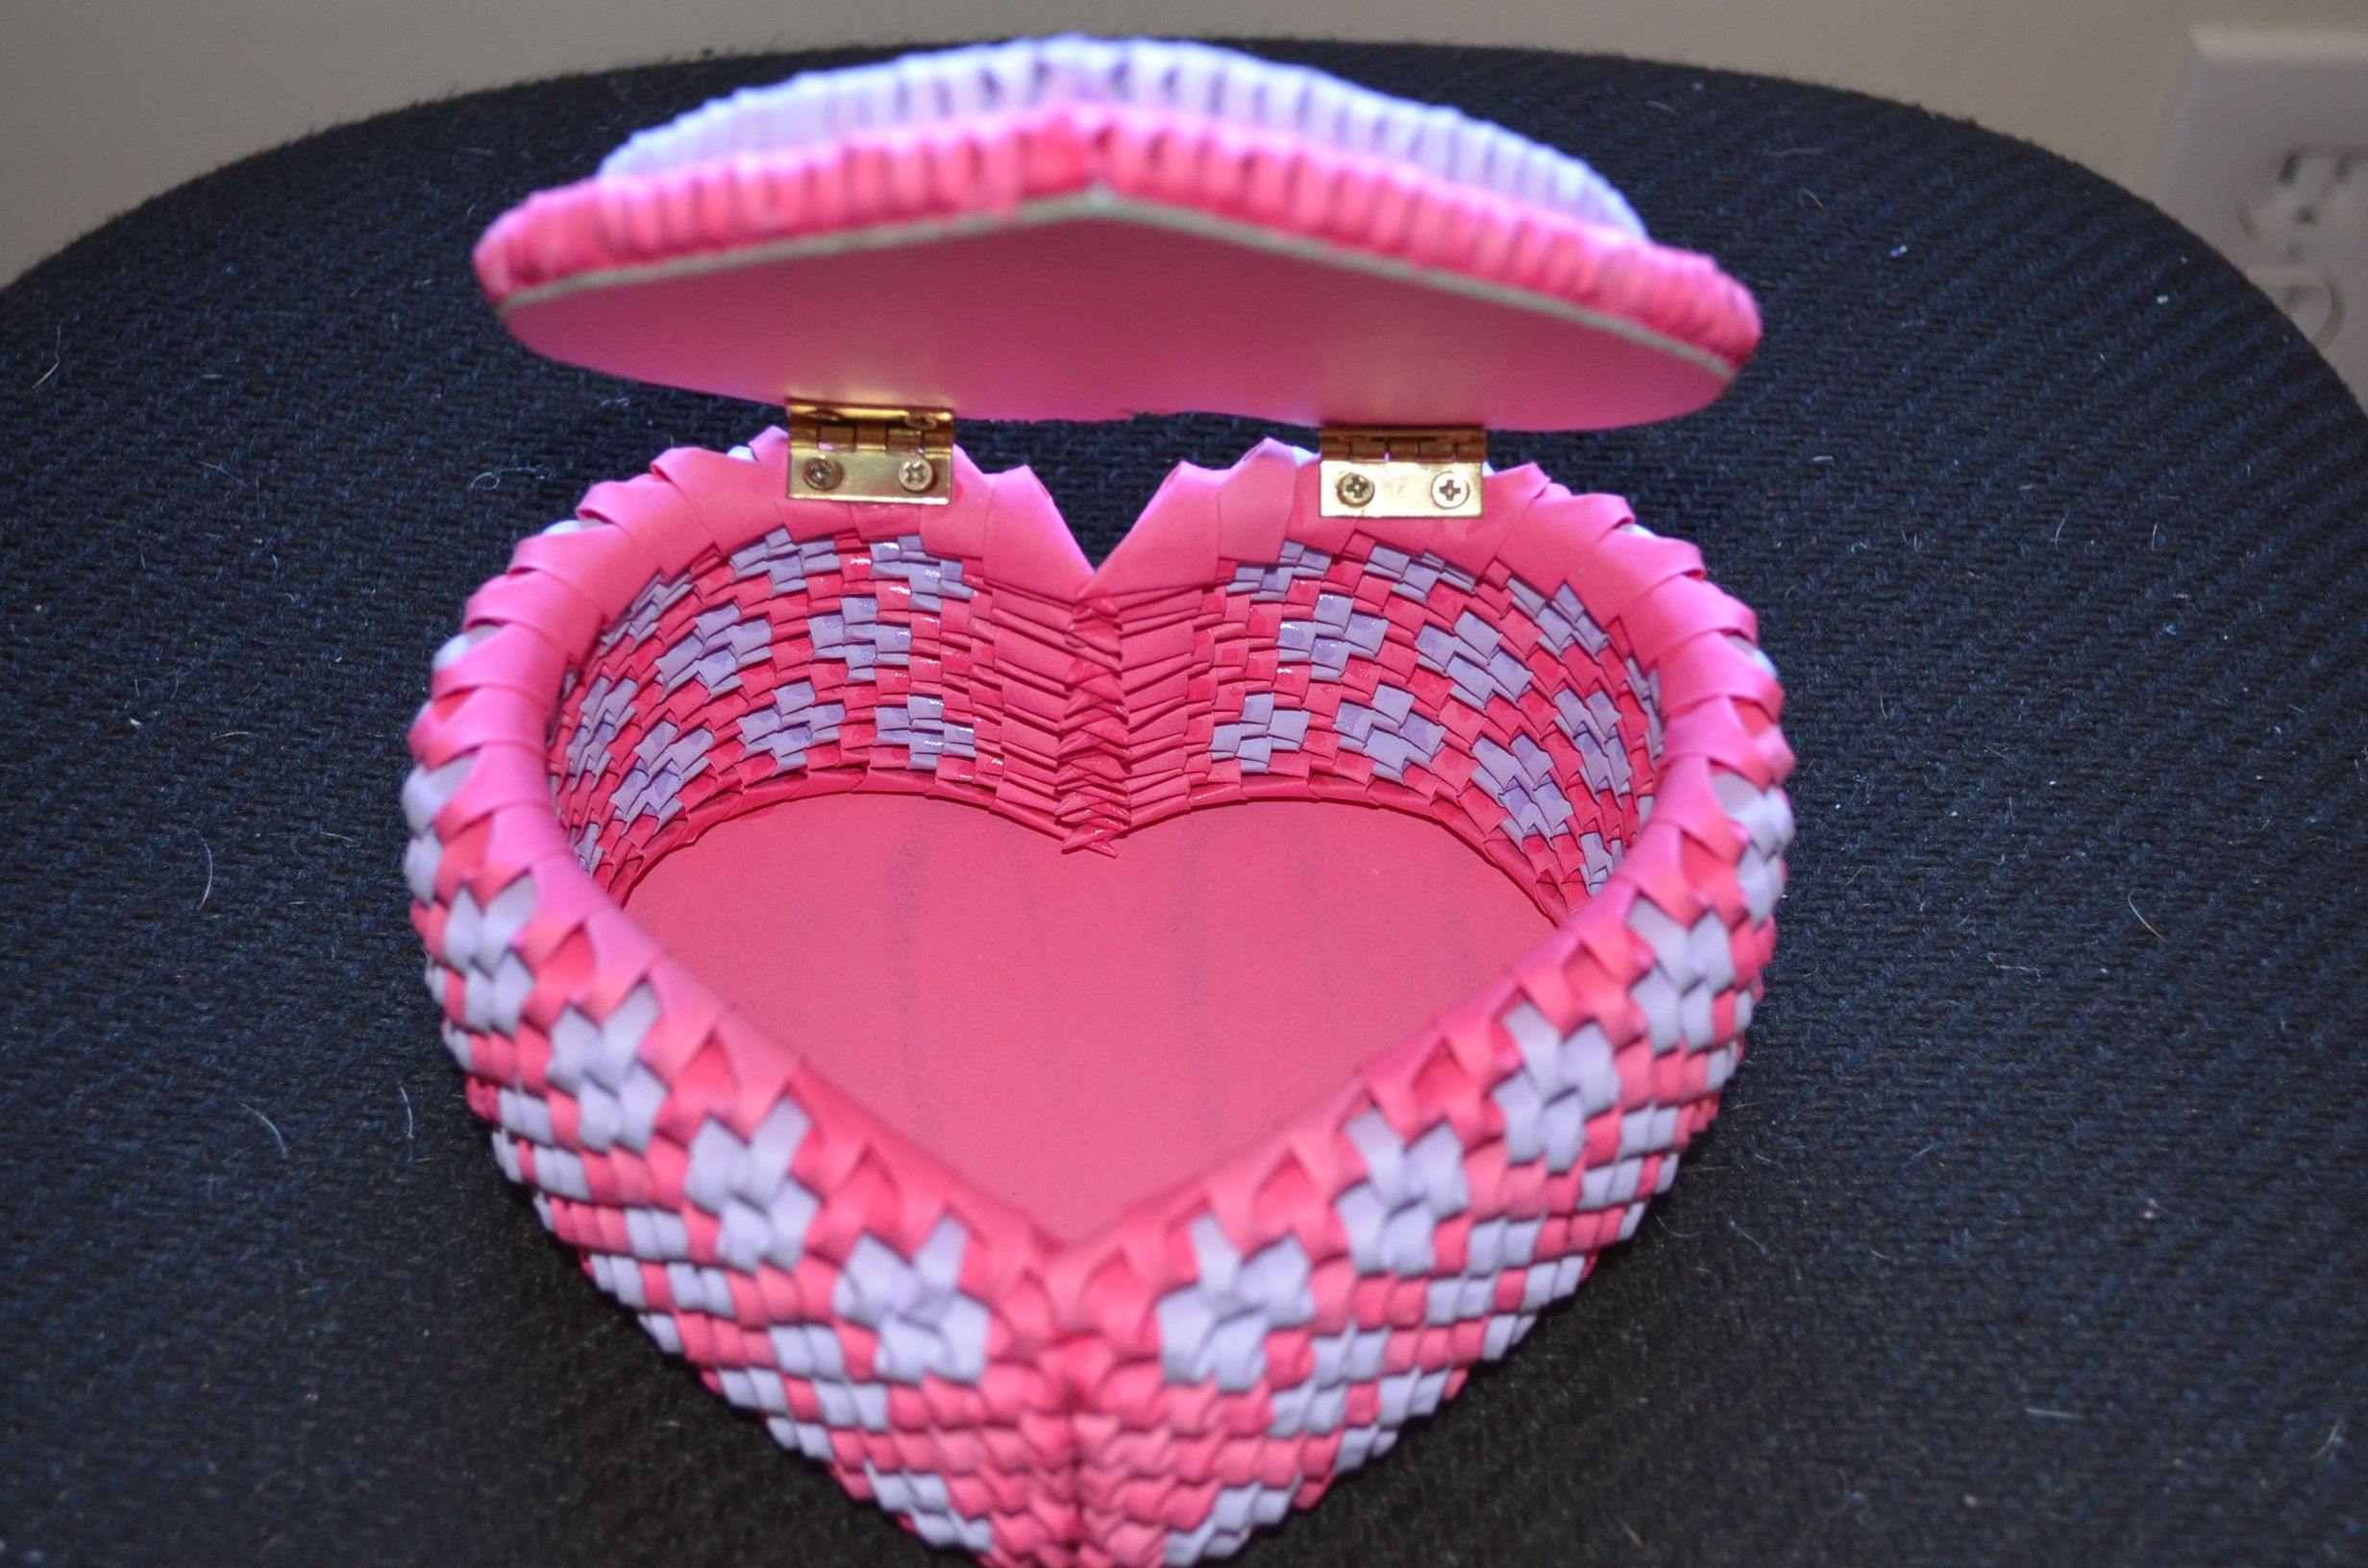 Heart Box | My 3d origami in 2018 | Pinterest | Origami ... - photo#45